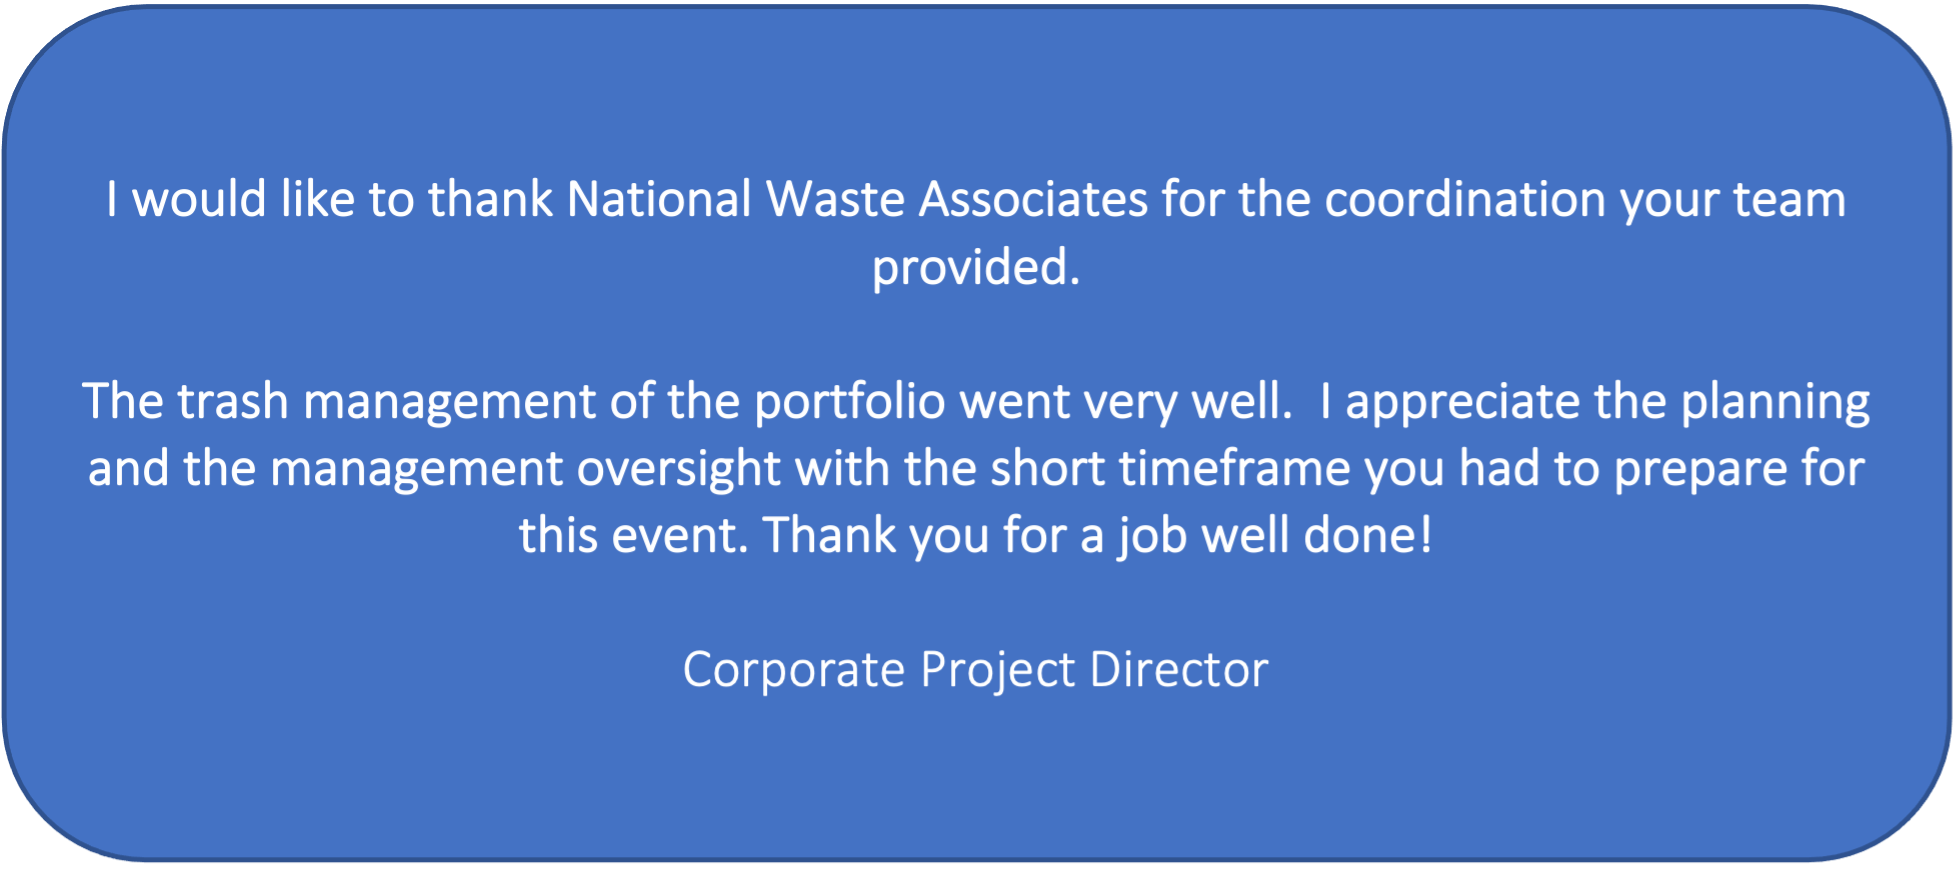 http://www.nationalwaste.com/wp-content/uploads/National-Waste-Associates-Halves-Disposal-Project-Budget-for-Major-Bank-Quote.png